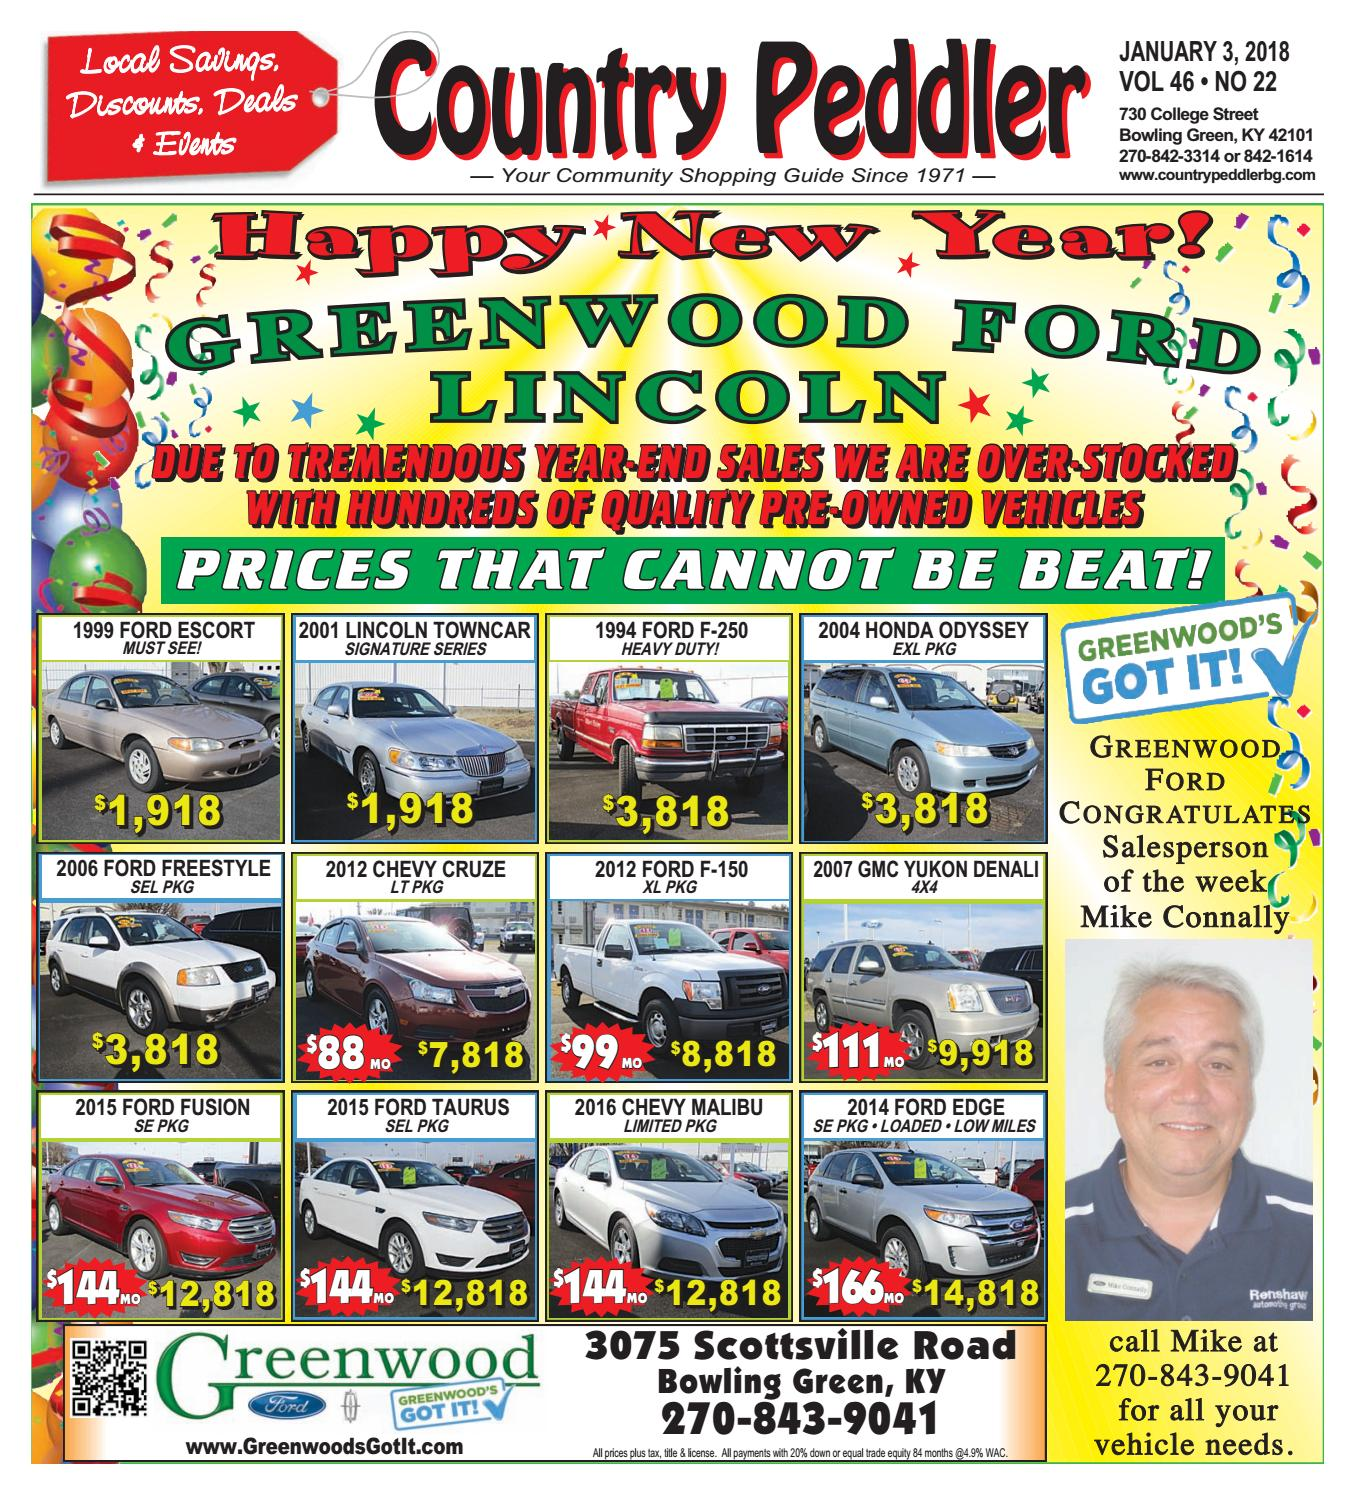 2015 Ford Taurus Se: Country Peddler 01.03.2018 By Country Peddler